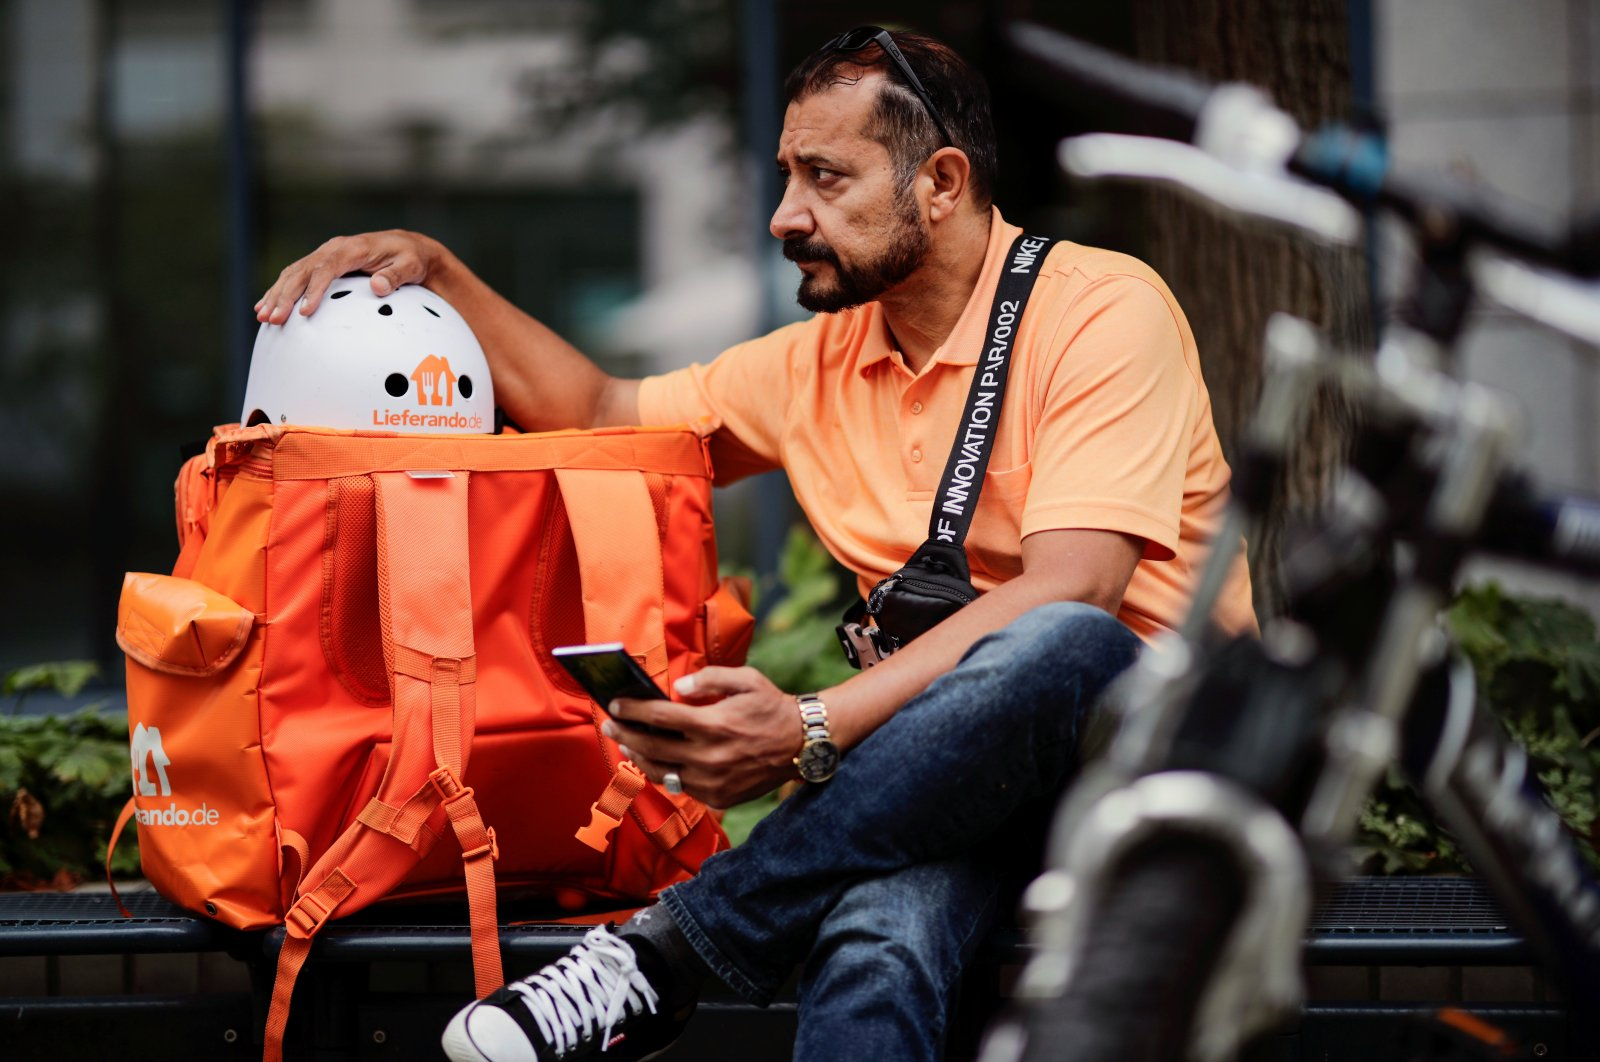 Former Afghan Communication Minister Sayed Sadaat sits with his gear as he works for the food delivery service Lieferando in Leipzig, Germany, Aug. 26, 2021. (REUTERS Photo)